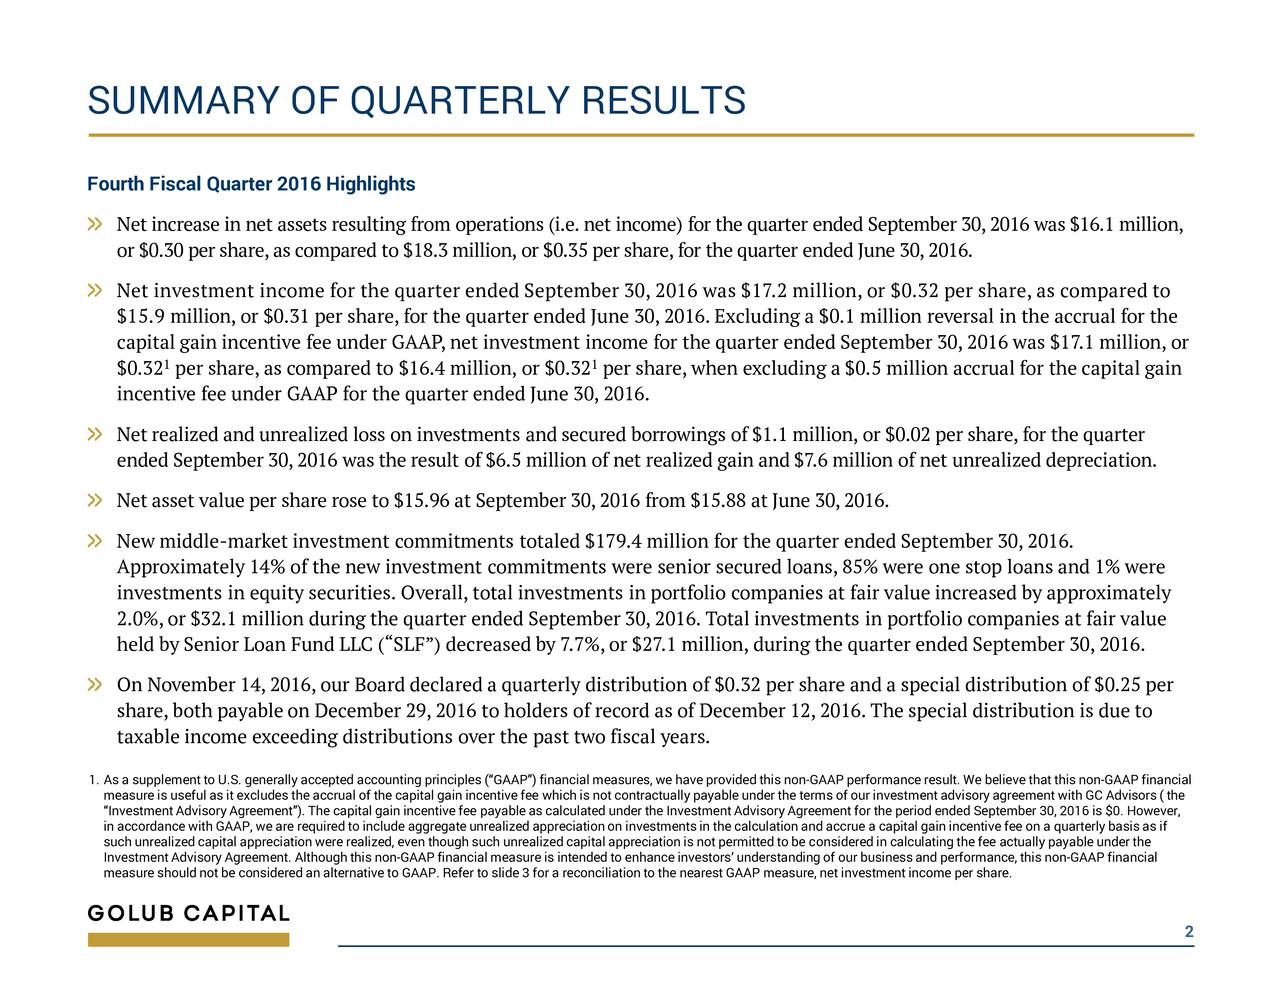 Fourth Fiscal Quarter 2016 Highlights Net increase in net assets resulting from operations (i.e. net income) for the quarter ended September 30,2016 was $16.1 limni,l or $0.30 per share,as compared to $18.3 million, or $0.35 per share,for the quarter ended June 30,2016. Net investment income for the quarter ended September 30, 2016 was $17.2 million,or $0.32 per share,as compared to $15.9 million,or $0.31 per share, for the quarter ended June 30, 2016. Excluding a $0.1 million reversal in the accrual for the capital gain incentive fee under GAAP, net investment income for the quarter ended September 30, 2016 was $17.1 million, or $0.321 per share,as compared to $16.4 million, or $0.32 per share, when excluding a $0.5million accrual for the capital gain incentive fee under GAAP for the quarter ended June 30, 2016. Net realized and unrealized loss on investments and secured borrowings of $1.1 million, or $0.02 per share, for the quarter ended September 30, 2016 was the result of $6.5 million of ner tealizedgain and $7.6 million of net unrealized depreciation. Net asset value per share rose to $15.96 at September 30, 2016 from $15.88 at June 30, 2016. New middle-market investment commitments totaled $179.4 million for the quarter ended September 30, 2016. Approximately 14% of the new investment commitments were senior secured loans, 85% were one stop loans and 1% were investments in equity securities. Overall, total investments in portfolio companies at fair value increased by approximately 2.0%,or $32.1 million during the quarter ended September 30,2016. Total investments in portfolio companies at fair value held by Senior Loan Fund LLC (SLF) decreased by 7.7%, or $27.1 million, during the quarter ended September 30, 2016. On November 14,2016, our Board declared a quarterly distribution of $0.32 per share and a special distribution of $0.25 per share, both payable on December 29, 2016 to holders of record as of December 12, 2016. The special distribution is due to taxable income exceeding distributionsover the past two fiscal years. 1. As a supplement to U.S. generally accepted accounting principles (GAAP) financial measures, we haveprovided this non-GAAP performance result. We believethat this non-GAAP financial measure is useful as it excludes the accrual of the capital gain incentive fee which is not contractually payable under the terms of our investment advisory agreement with GC Advisors ( the in accordance with GAAP,we are requiredto include aggregate unrealized appreciation on investments in the calculation and accrue a capital gain incentive fee on a quarterly basis as if such unrealized capital appreciation were realized, even though such unrealized capital appreciation is not permitted to be considered in calculating the fee actually payable under the Investment Advisory Agreement.Although this non-GAAP financial measure is intended to enhance investorsunderstanding of our business and performance, this non-GAAP financial measure should not be considered an alternative toGAAP. Refer to slide 3 for a reconciliation to the nearest GAAP measure, net investment income per share. 2